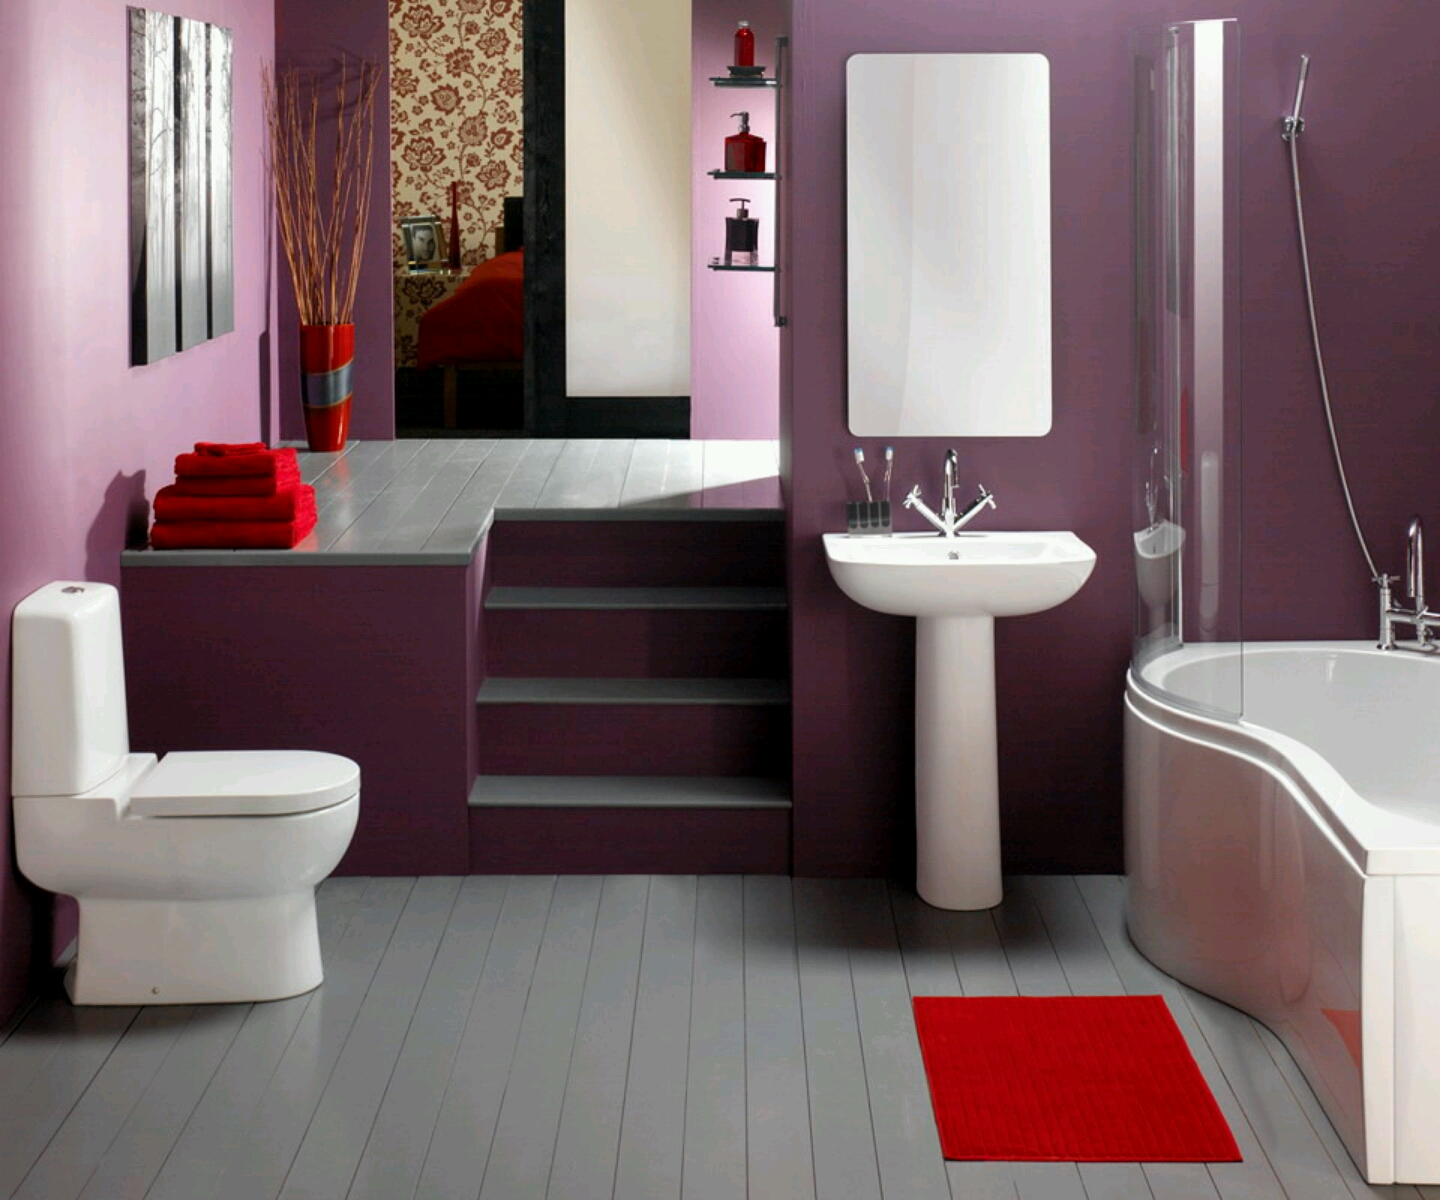 New home designs latest luxury modern bathrooms designs for Home design ideas bathroom